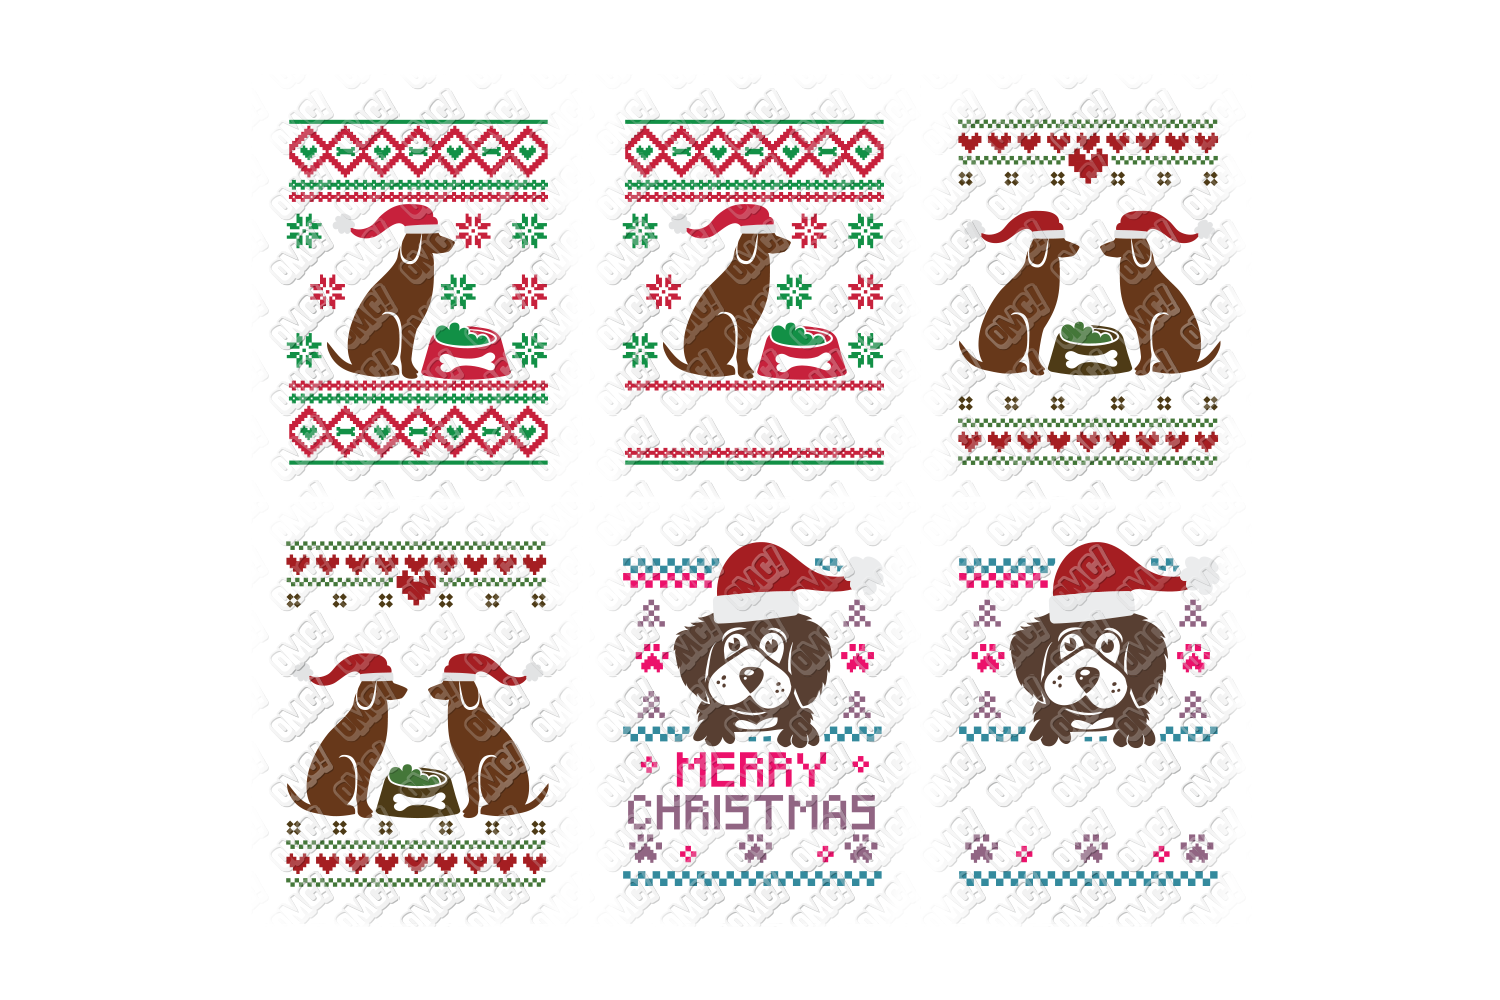 Dog Ugly Christmas SVG Template in SVG, DXF, PNG, EPS, JPG example image 2